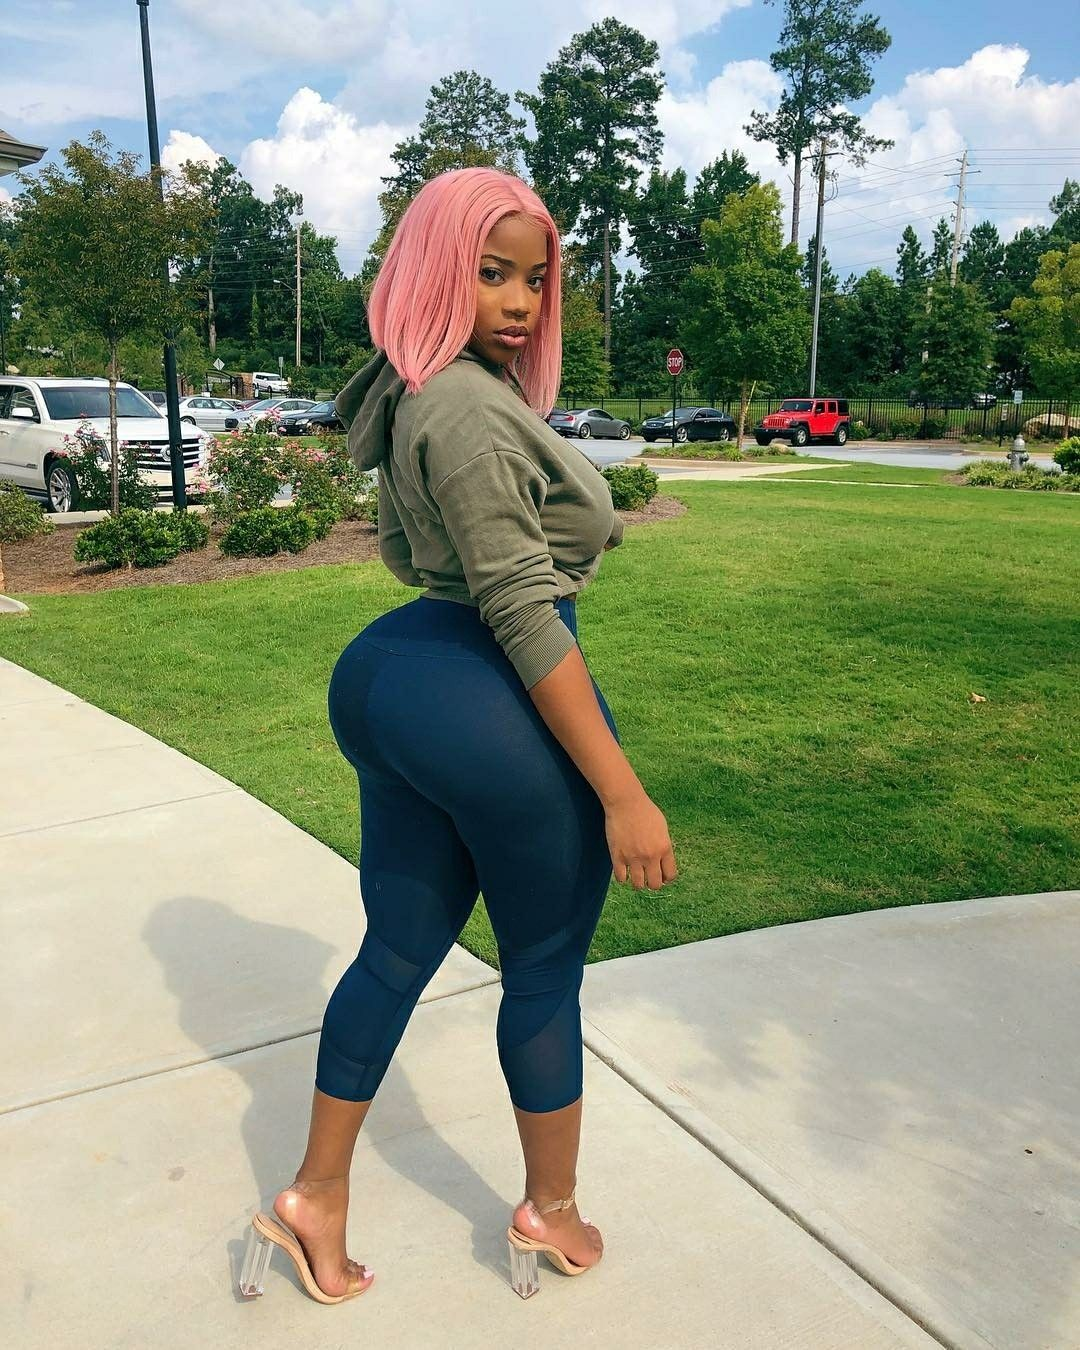 Ghetto Booty Phat Azz Thick Thighs Instagram Most Beautiful Women Colors